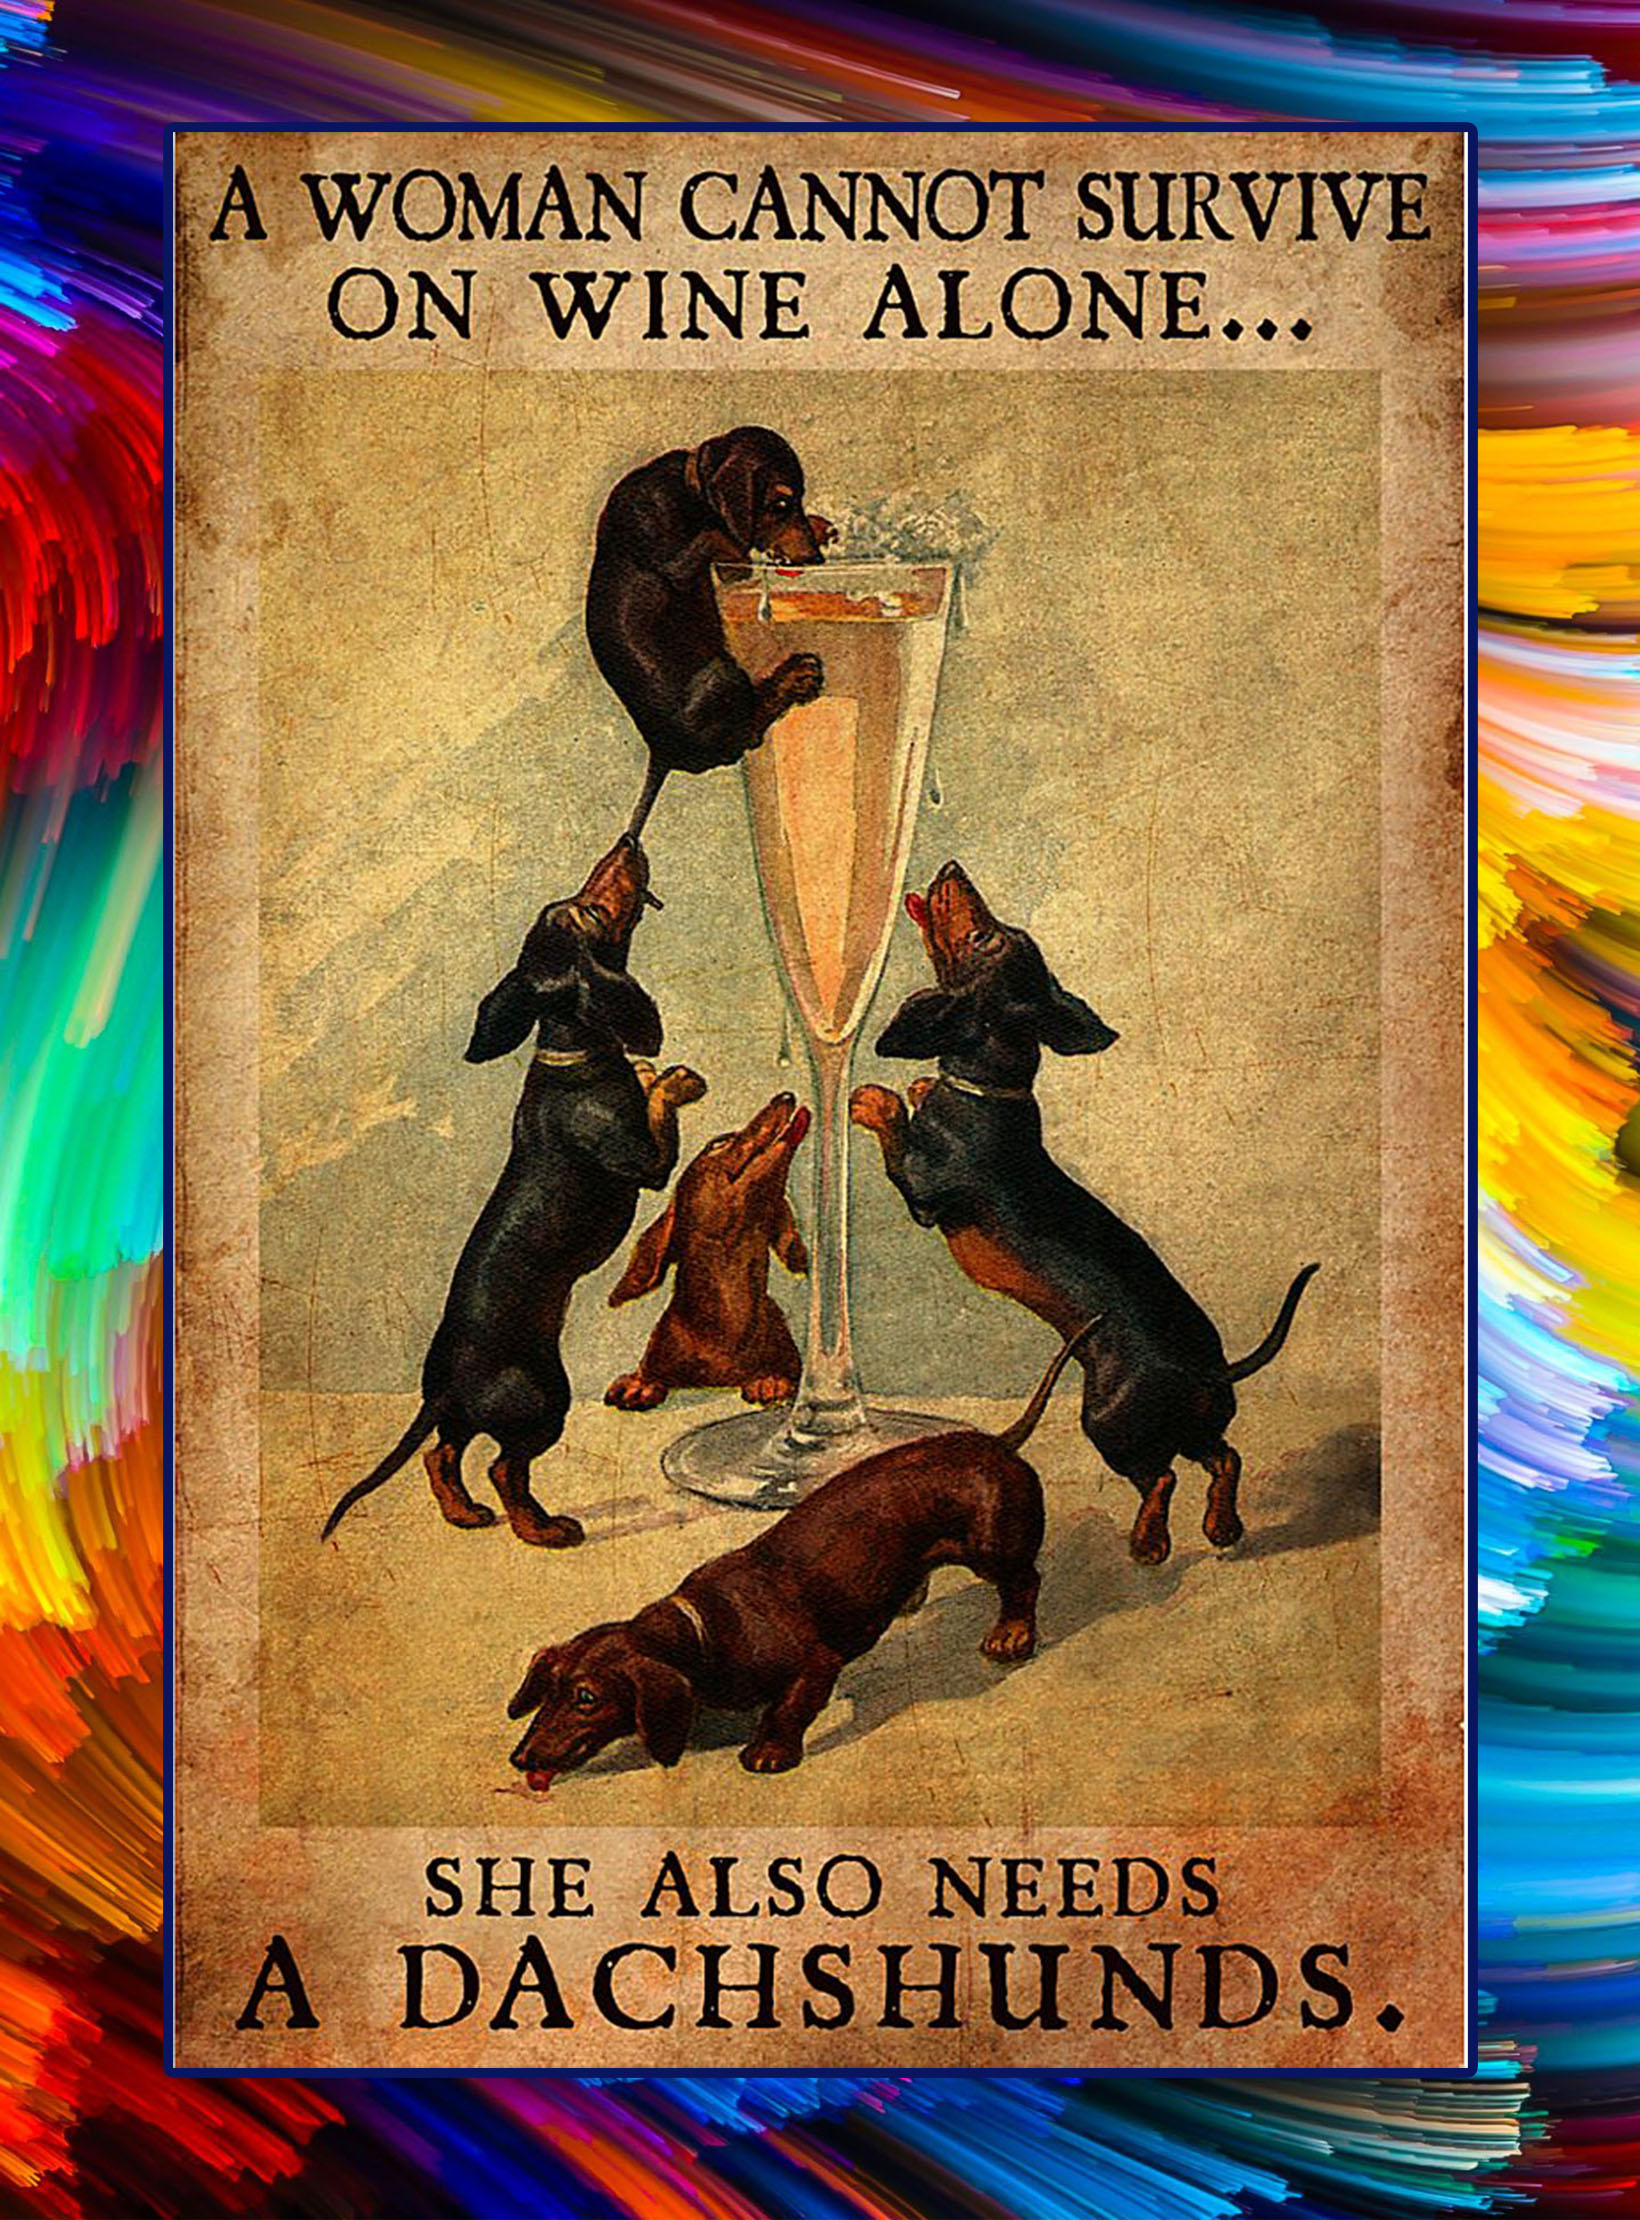 A woman cannot survive on wine alone she also needs a dachshunds poster - A2